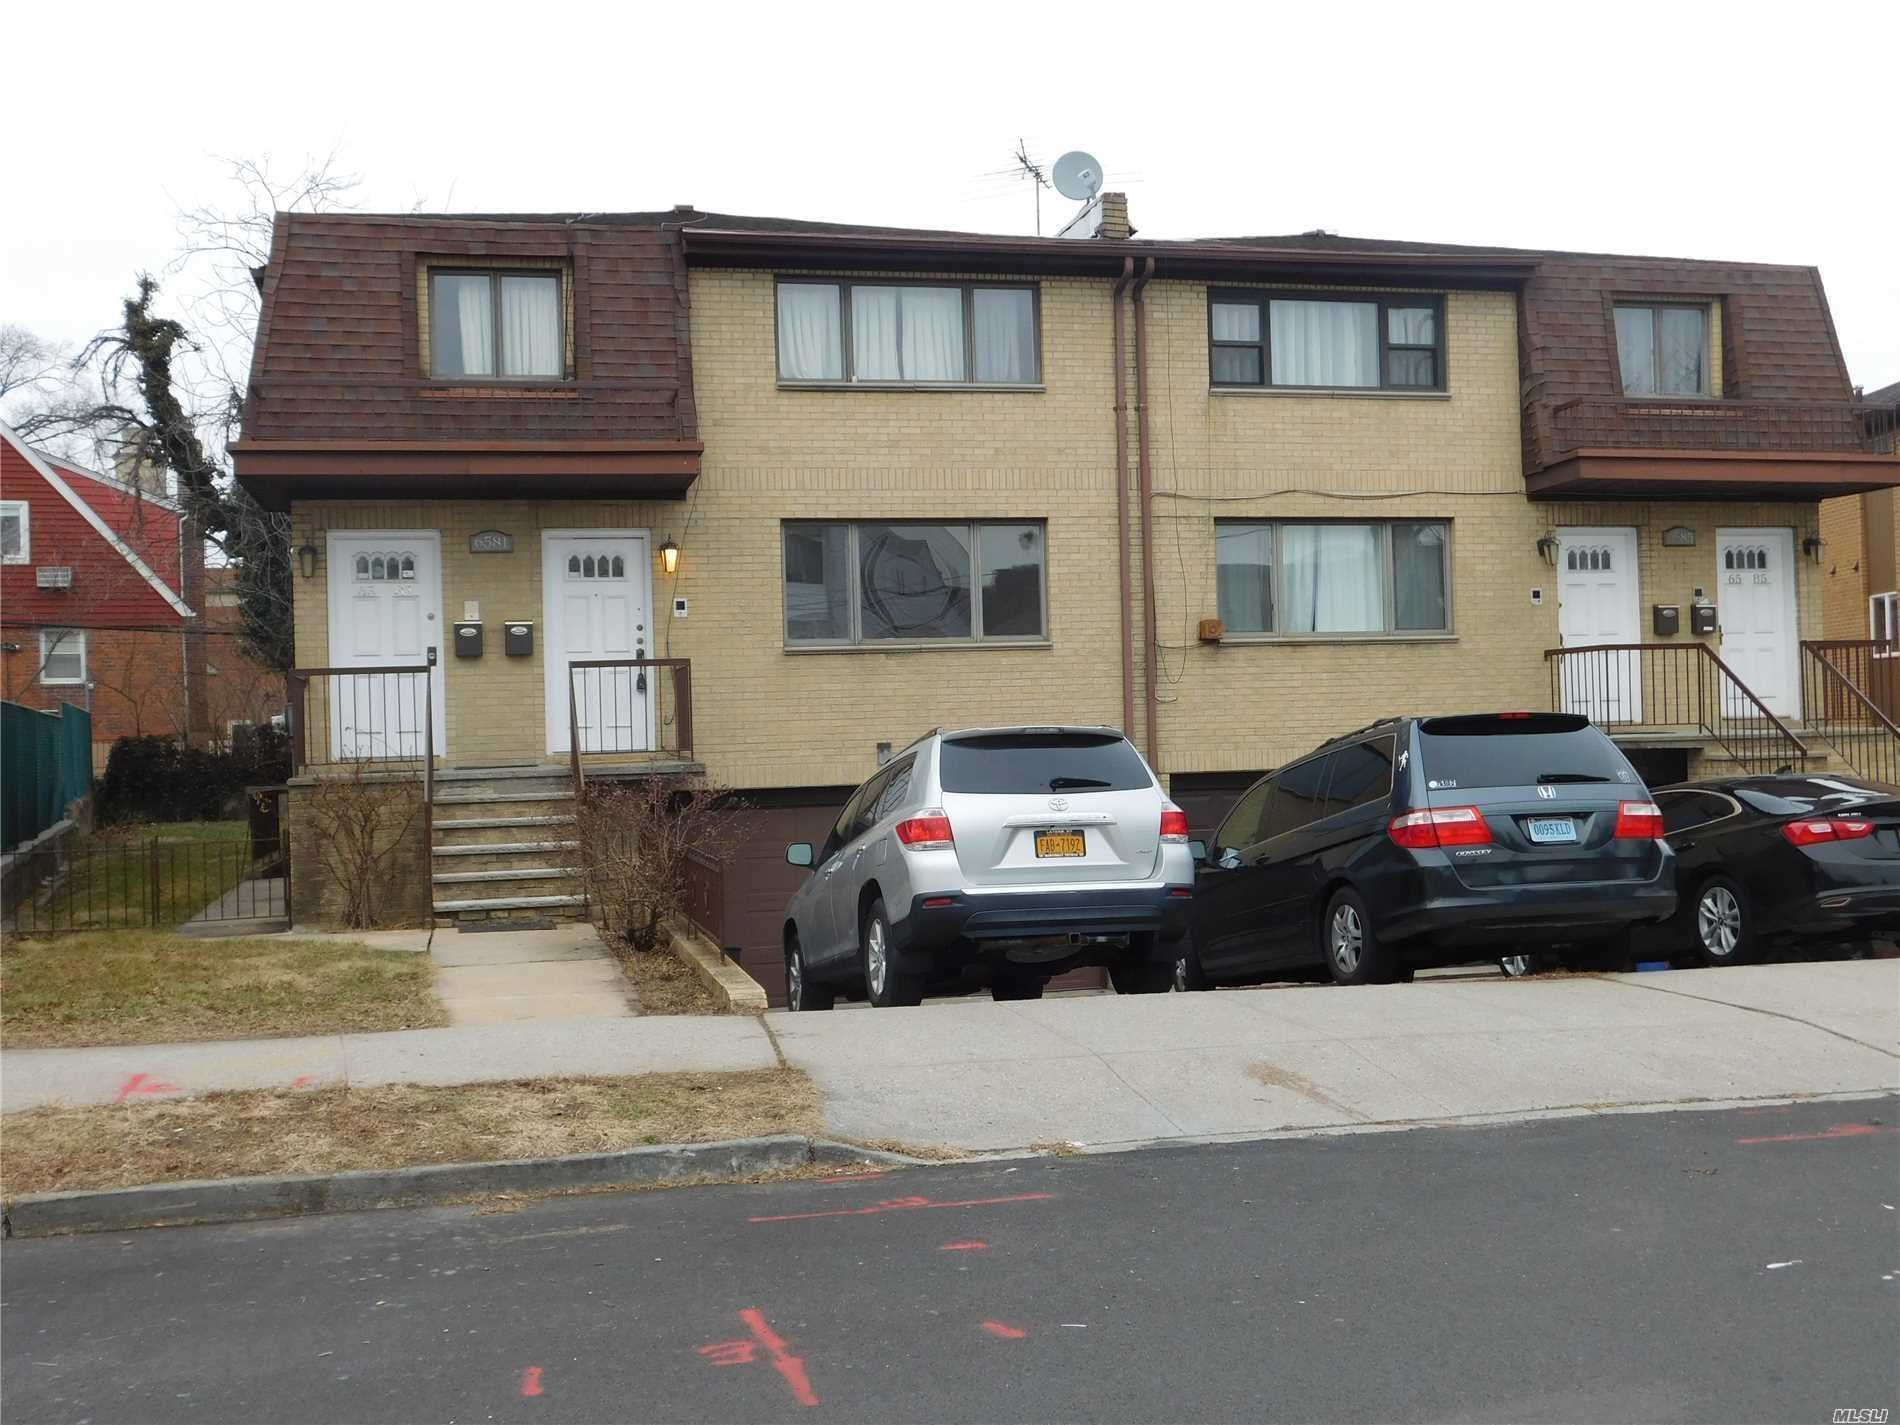 1, 400 Square Feet, 3 Bedroom, 2 Bath Apartment On 1st Floor Of Private Home With A Private Entrance, Eat In Kitchen, Large Living/Dining Room. Hardwood Floors Throughout. Balcony & Use Of Backyard. Additional Storage & Washer/Dryer in Basement. One Parking Space Available. Heat Is Included.